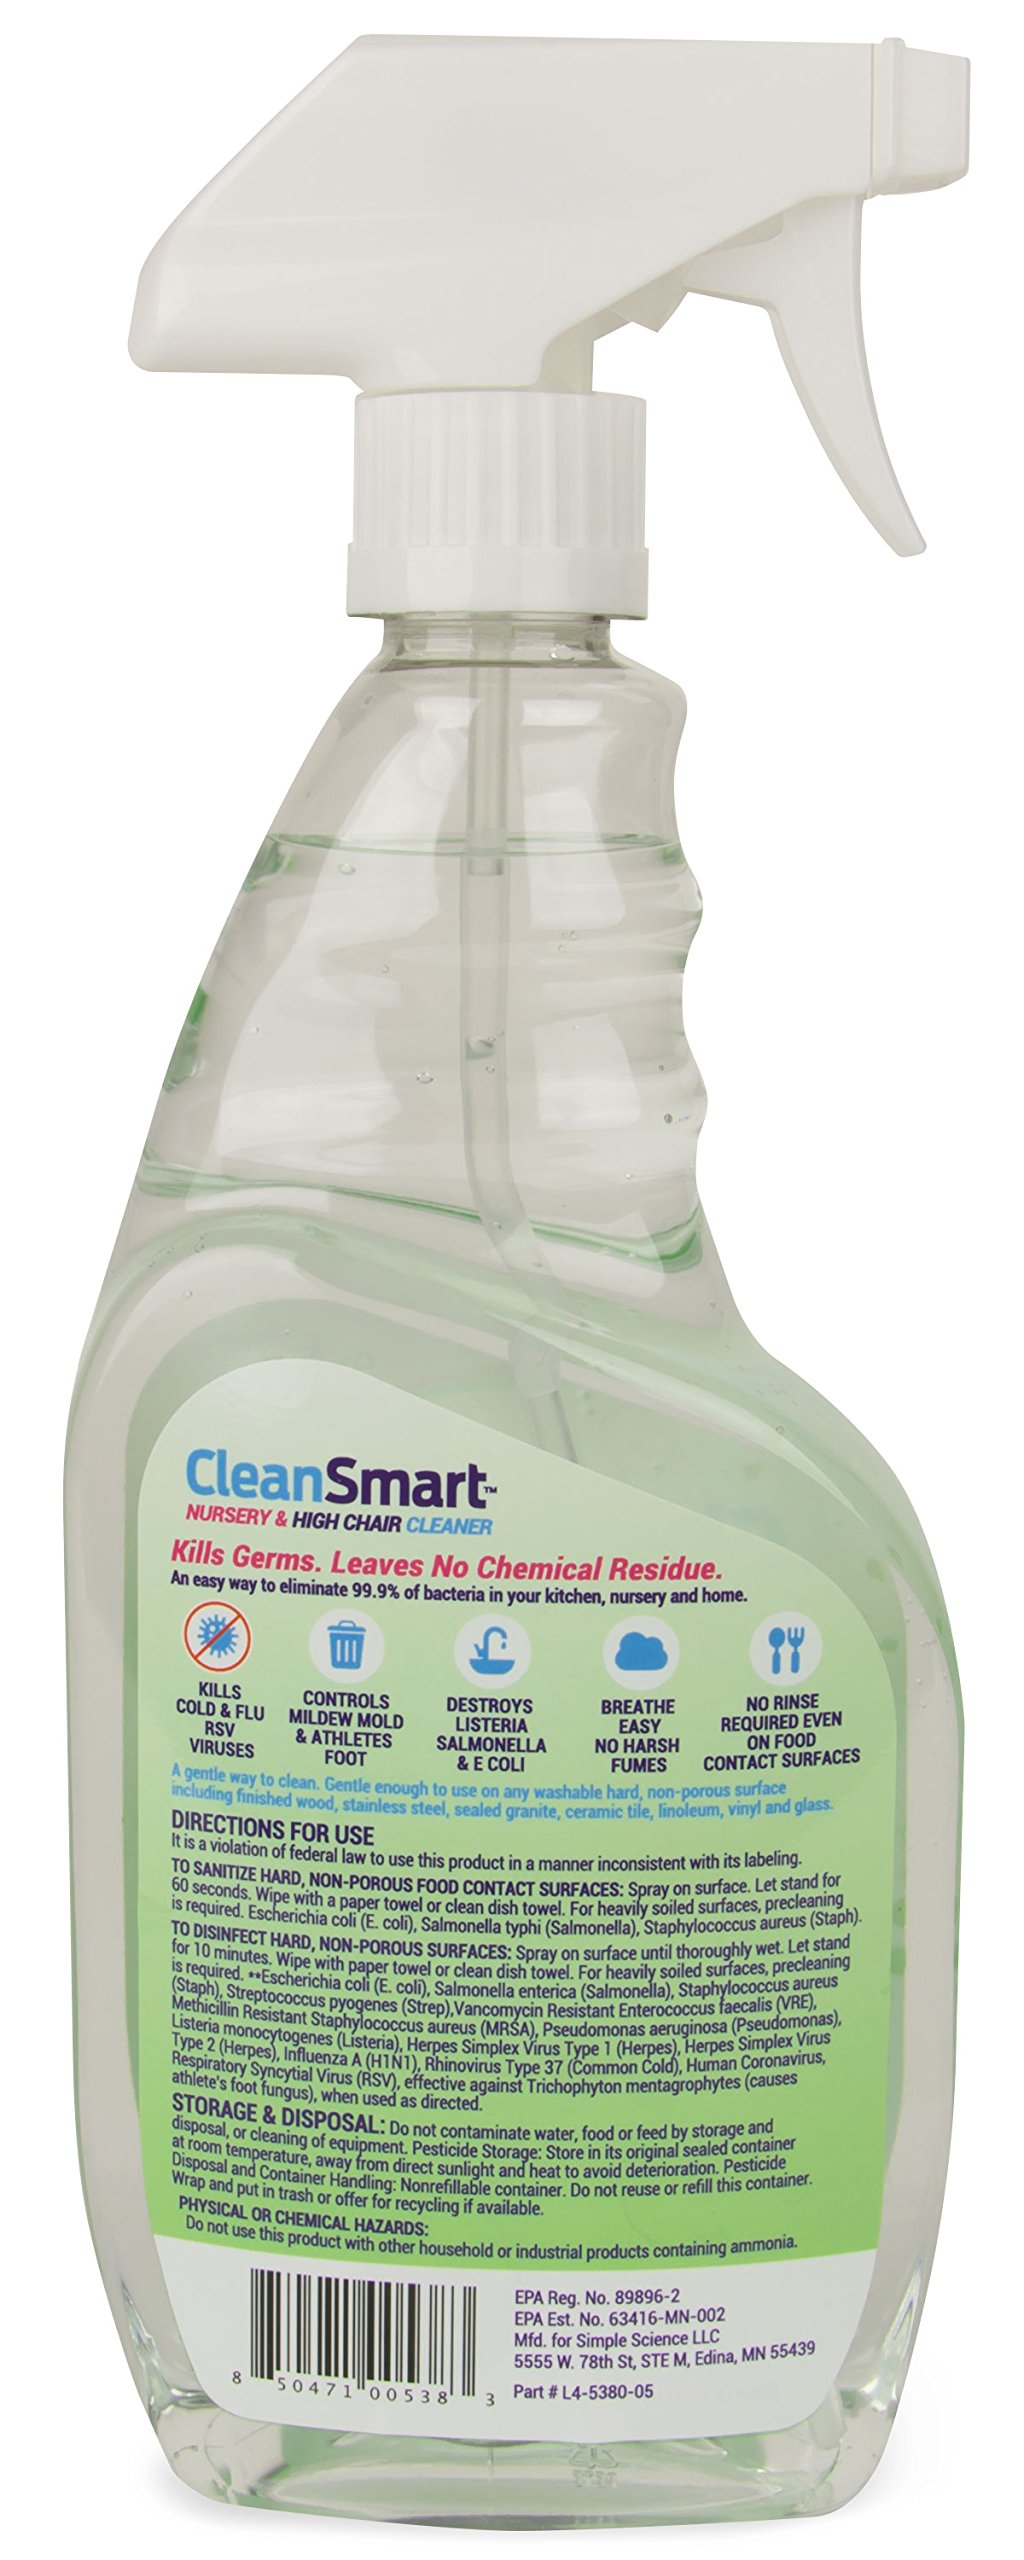 CleanSmart Nursery & High Chair Cleaner, Kills 99.9% of Germs, Leaves No Chemical Residue, Breaks Down to Simple Saline. 23oz, 2Pk. Kills Flu, Strep, RSV, E.Coli, More